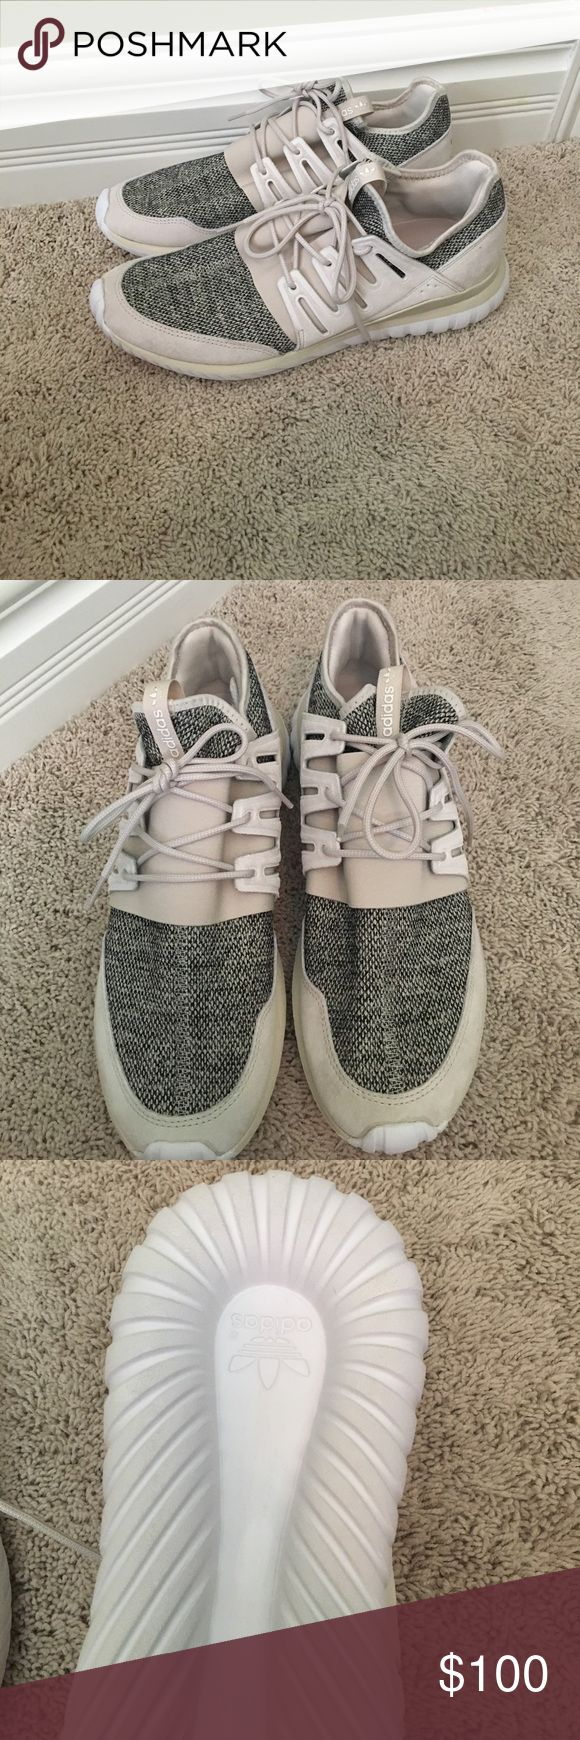 Brand new adidas tubular shoes. Never been worn. From adidas website. adidas Shoes